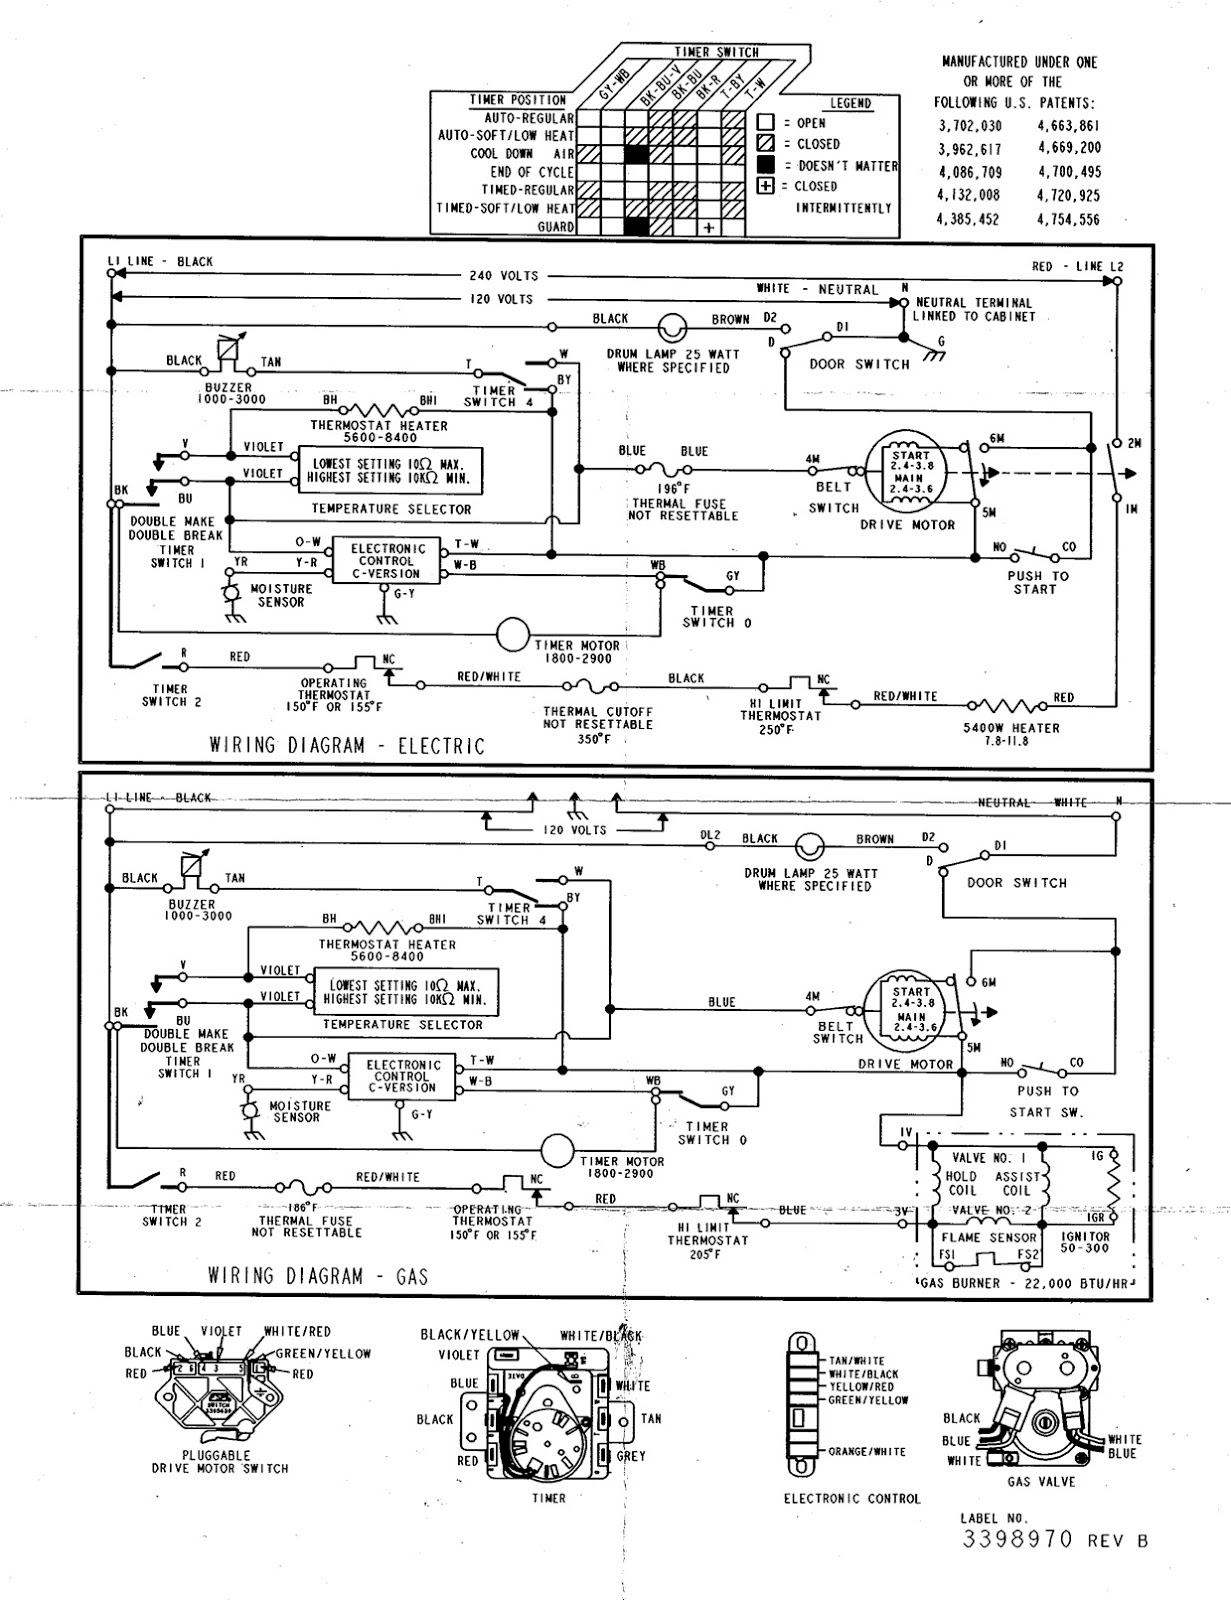 medium resolution of schematic for kenmore 90 series model 110 76902693